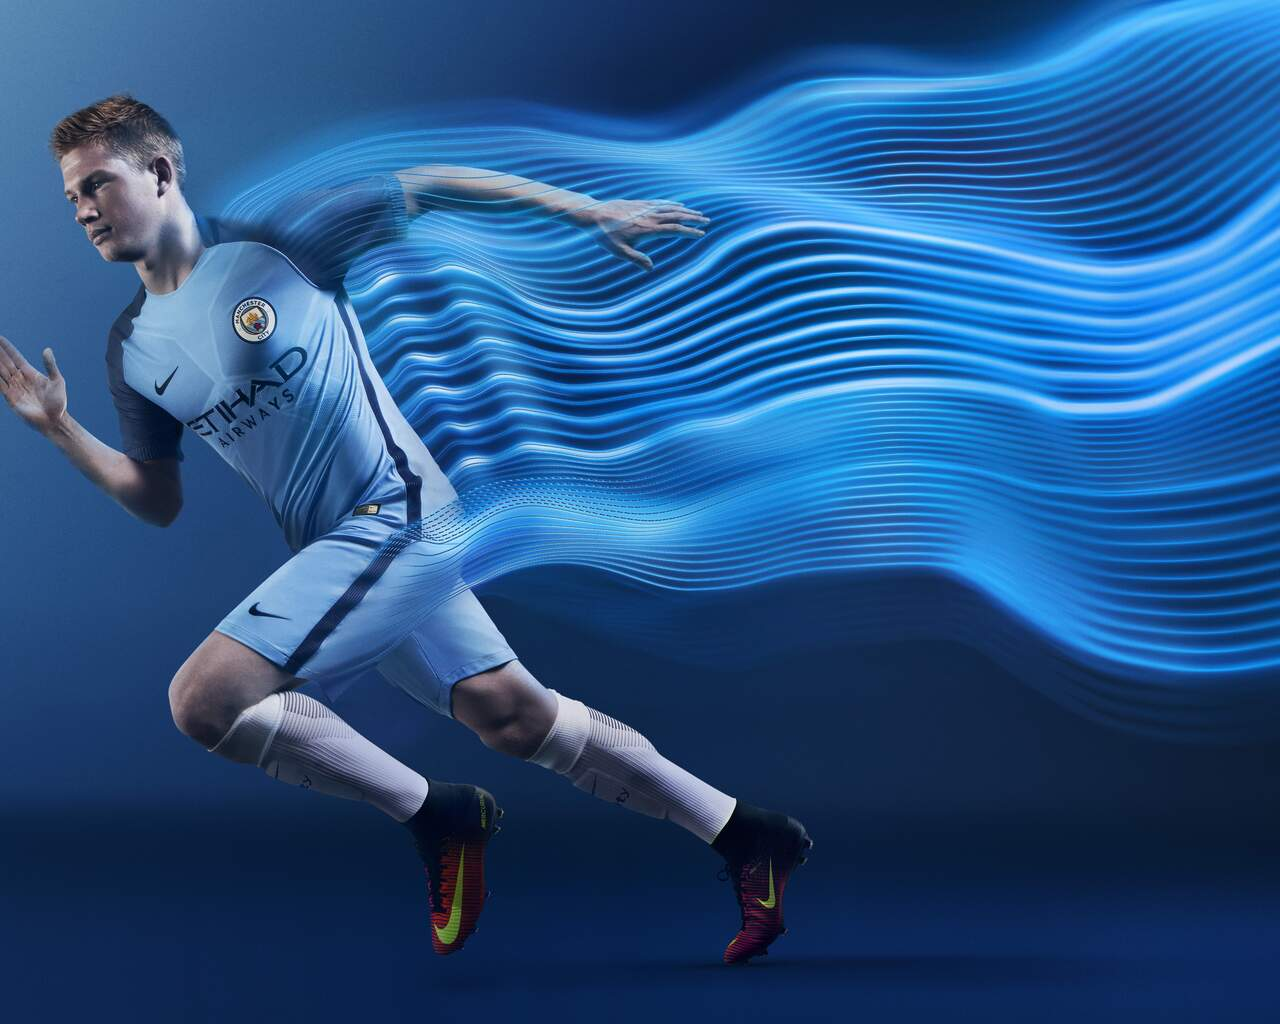 1280x1024 Manchester City Football Player 1280x1024 Resolution Hd 4k Wallpapers Images Backgrounds Photos And Pictures